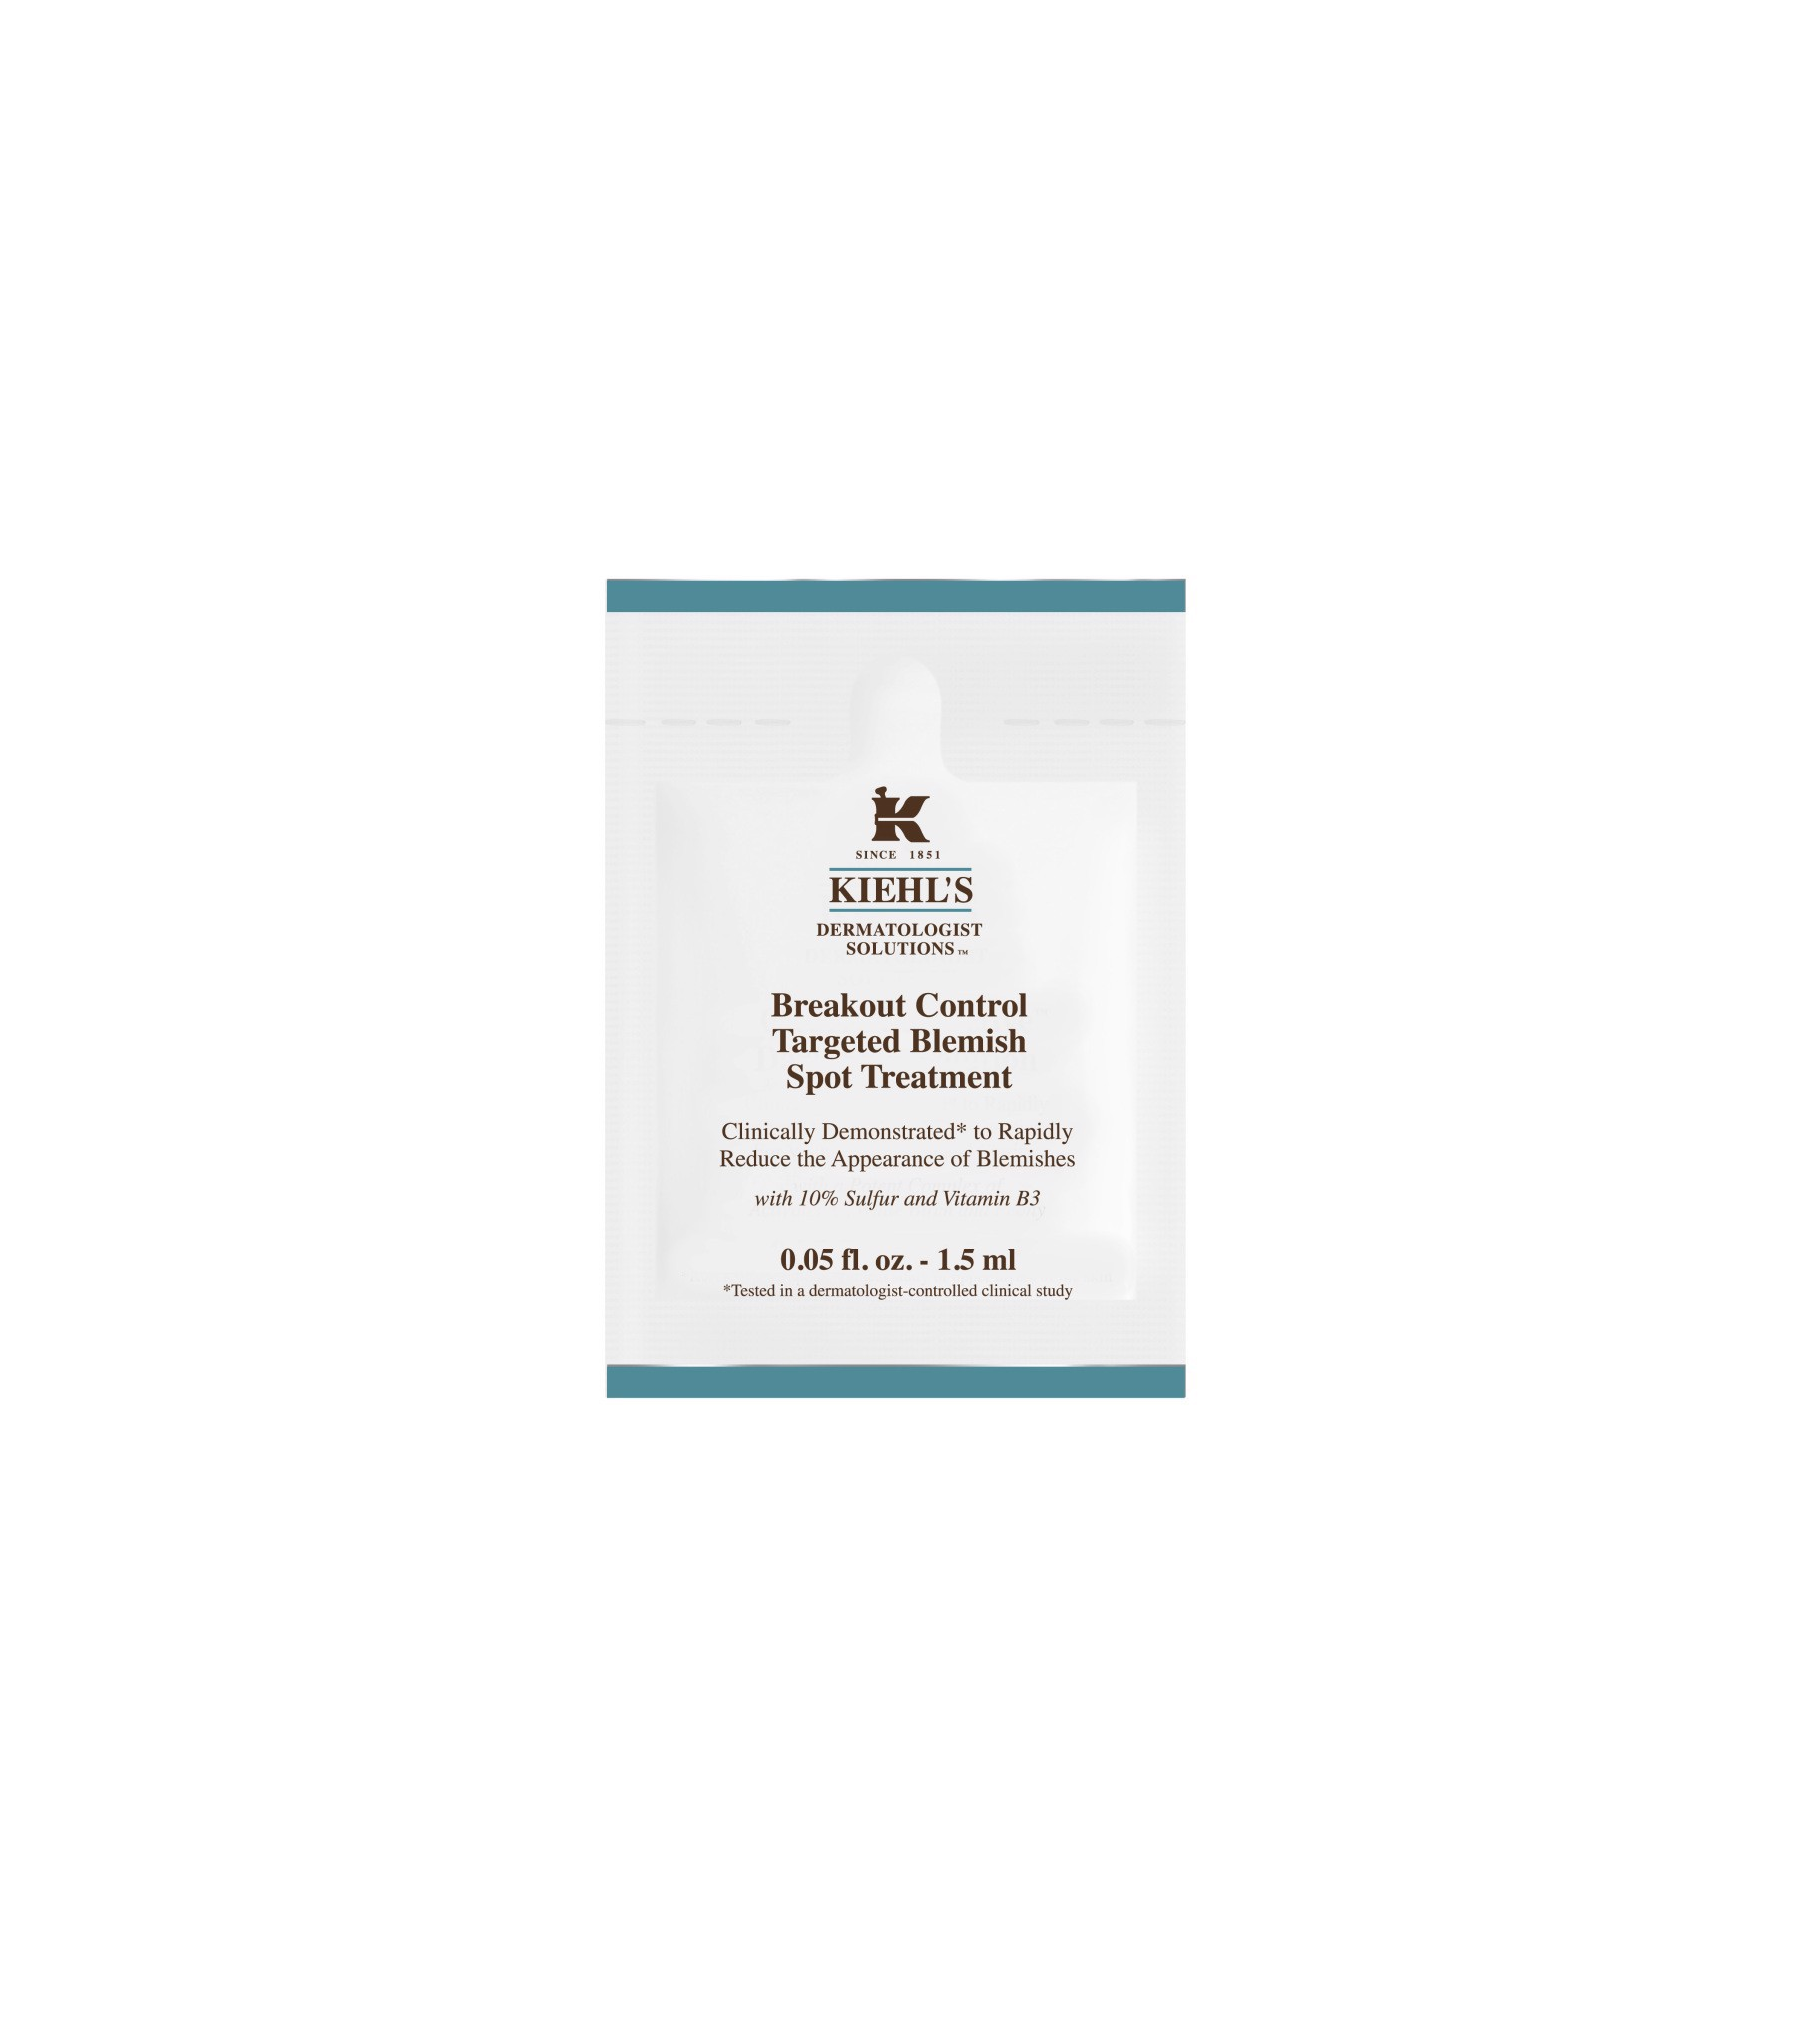 ACNE SPOT TREATMENT INTL PKT 1.5ML